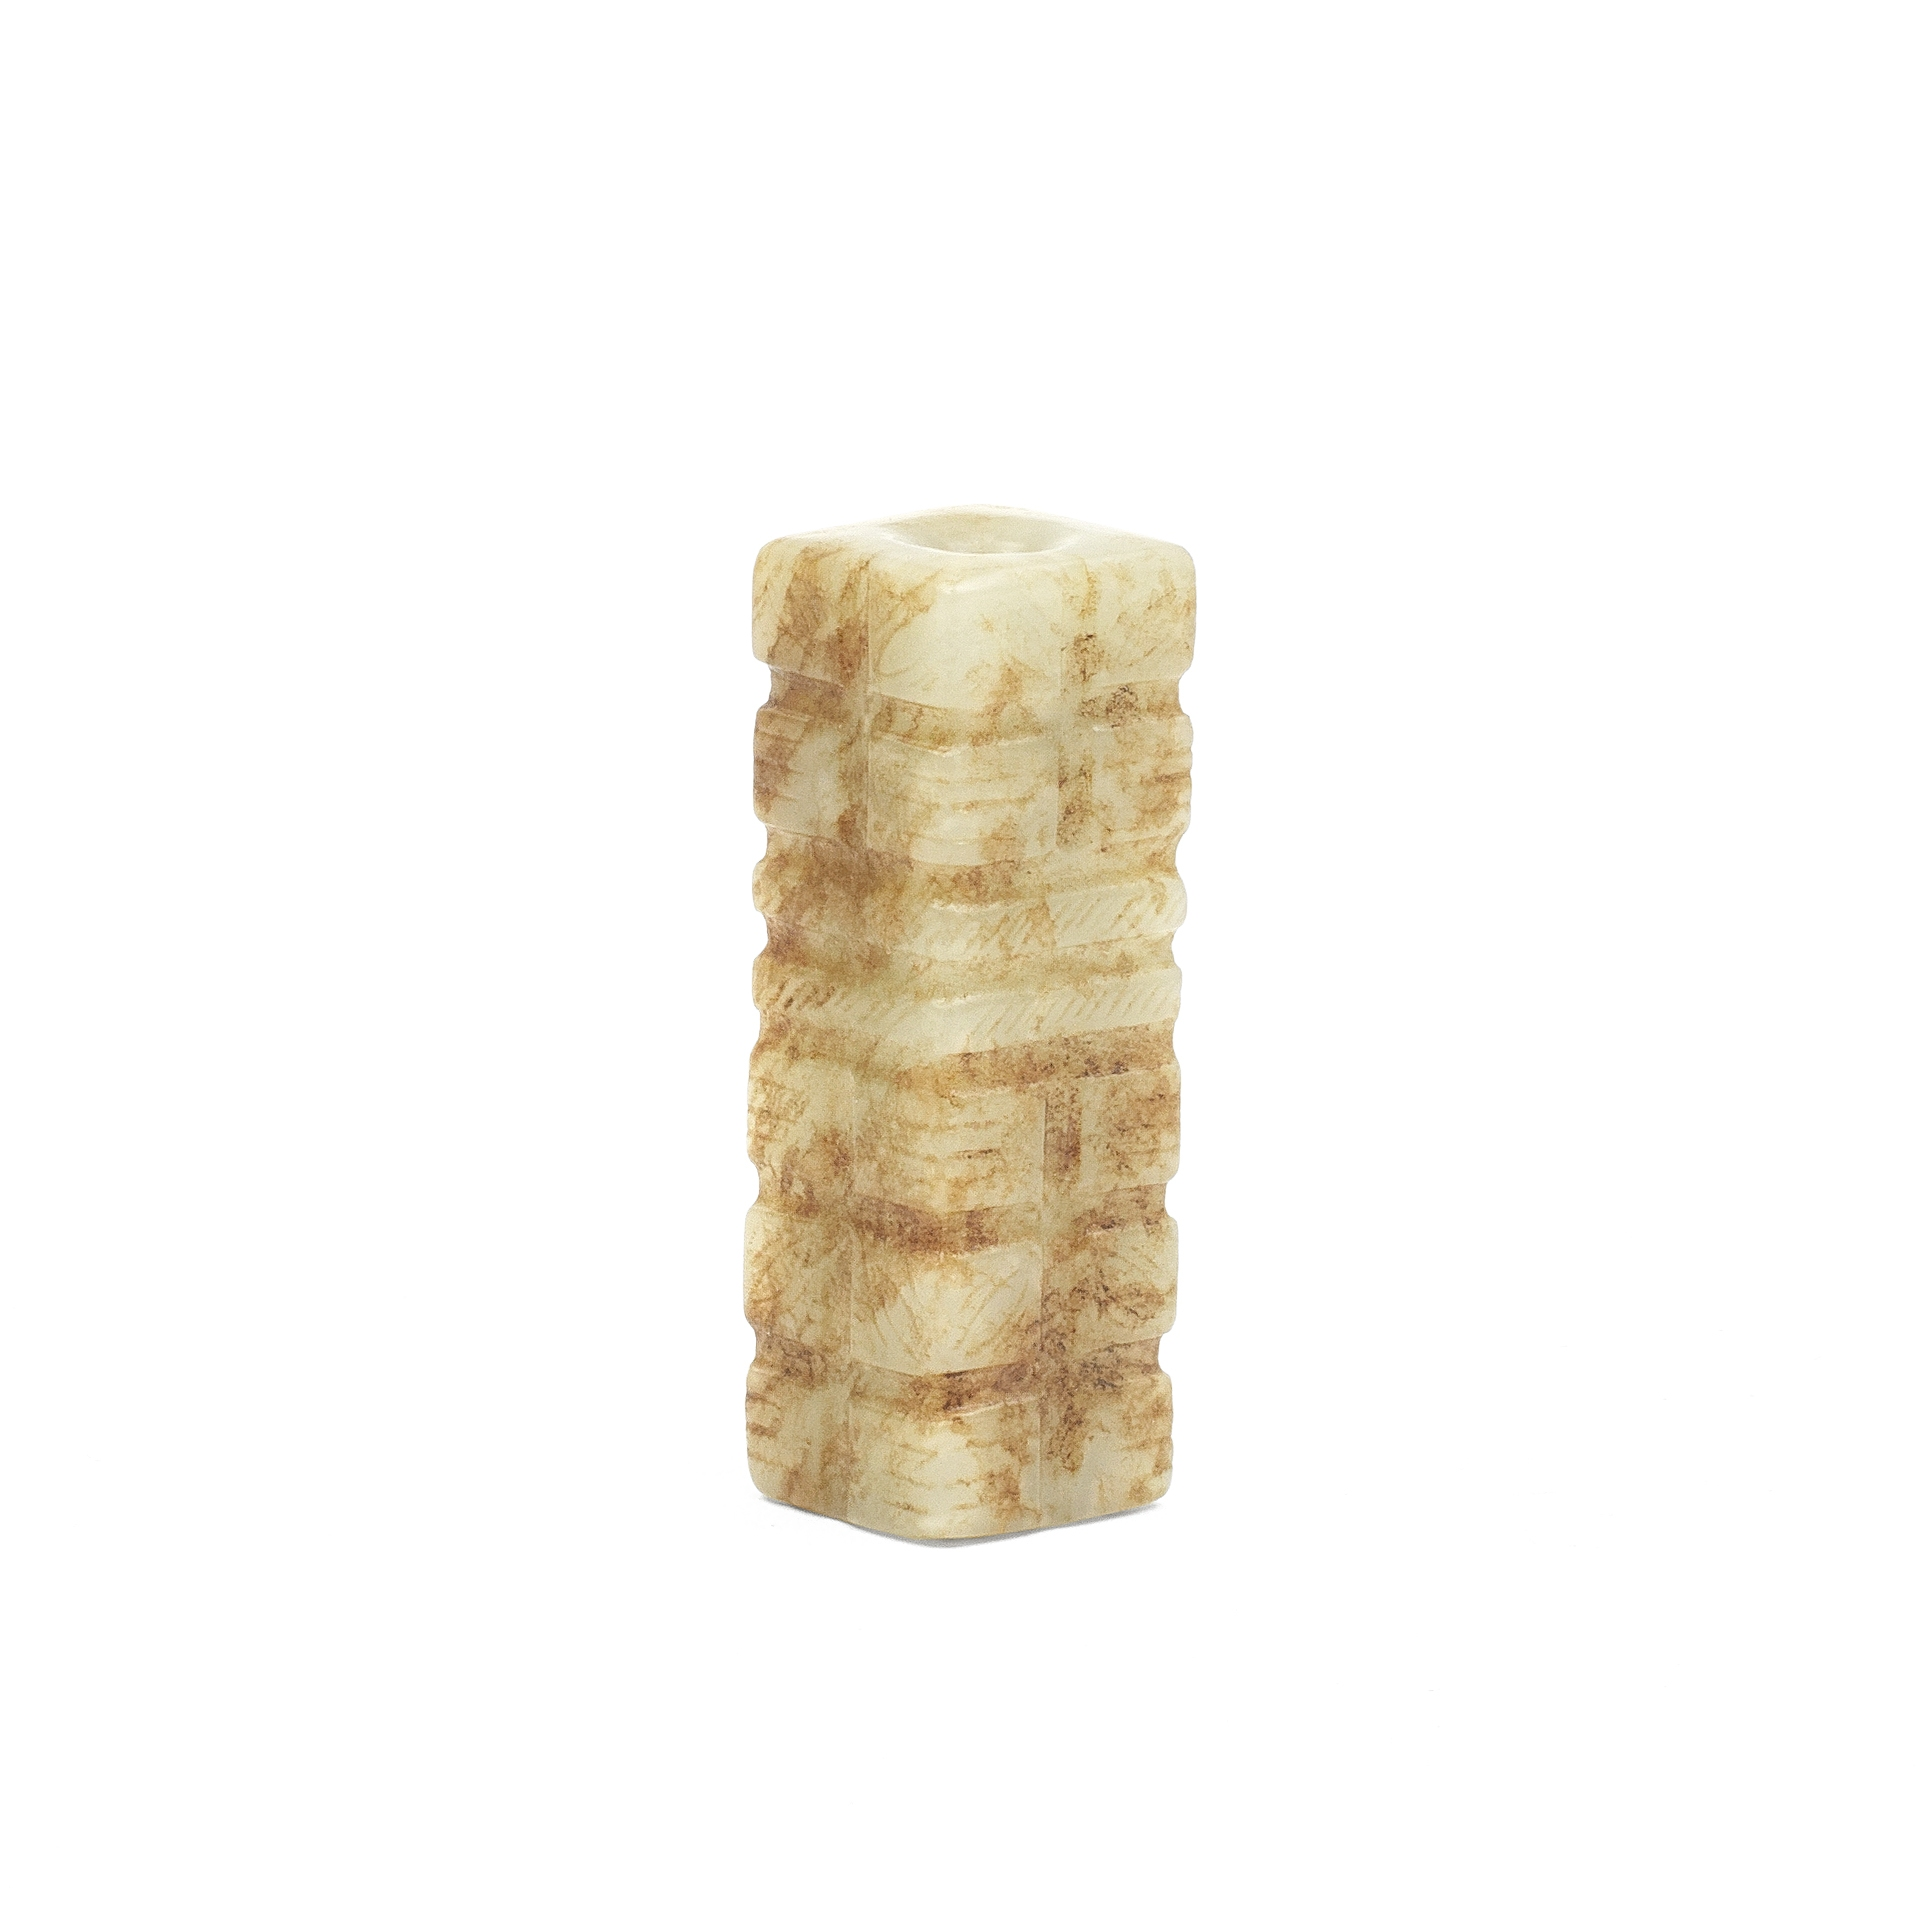 AN ARCHAISTIC PALE GREEN AND RUSSET JADE CONG-SHAPED BEAD Qing Dynasty or earlier